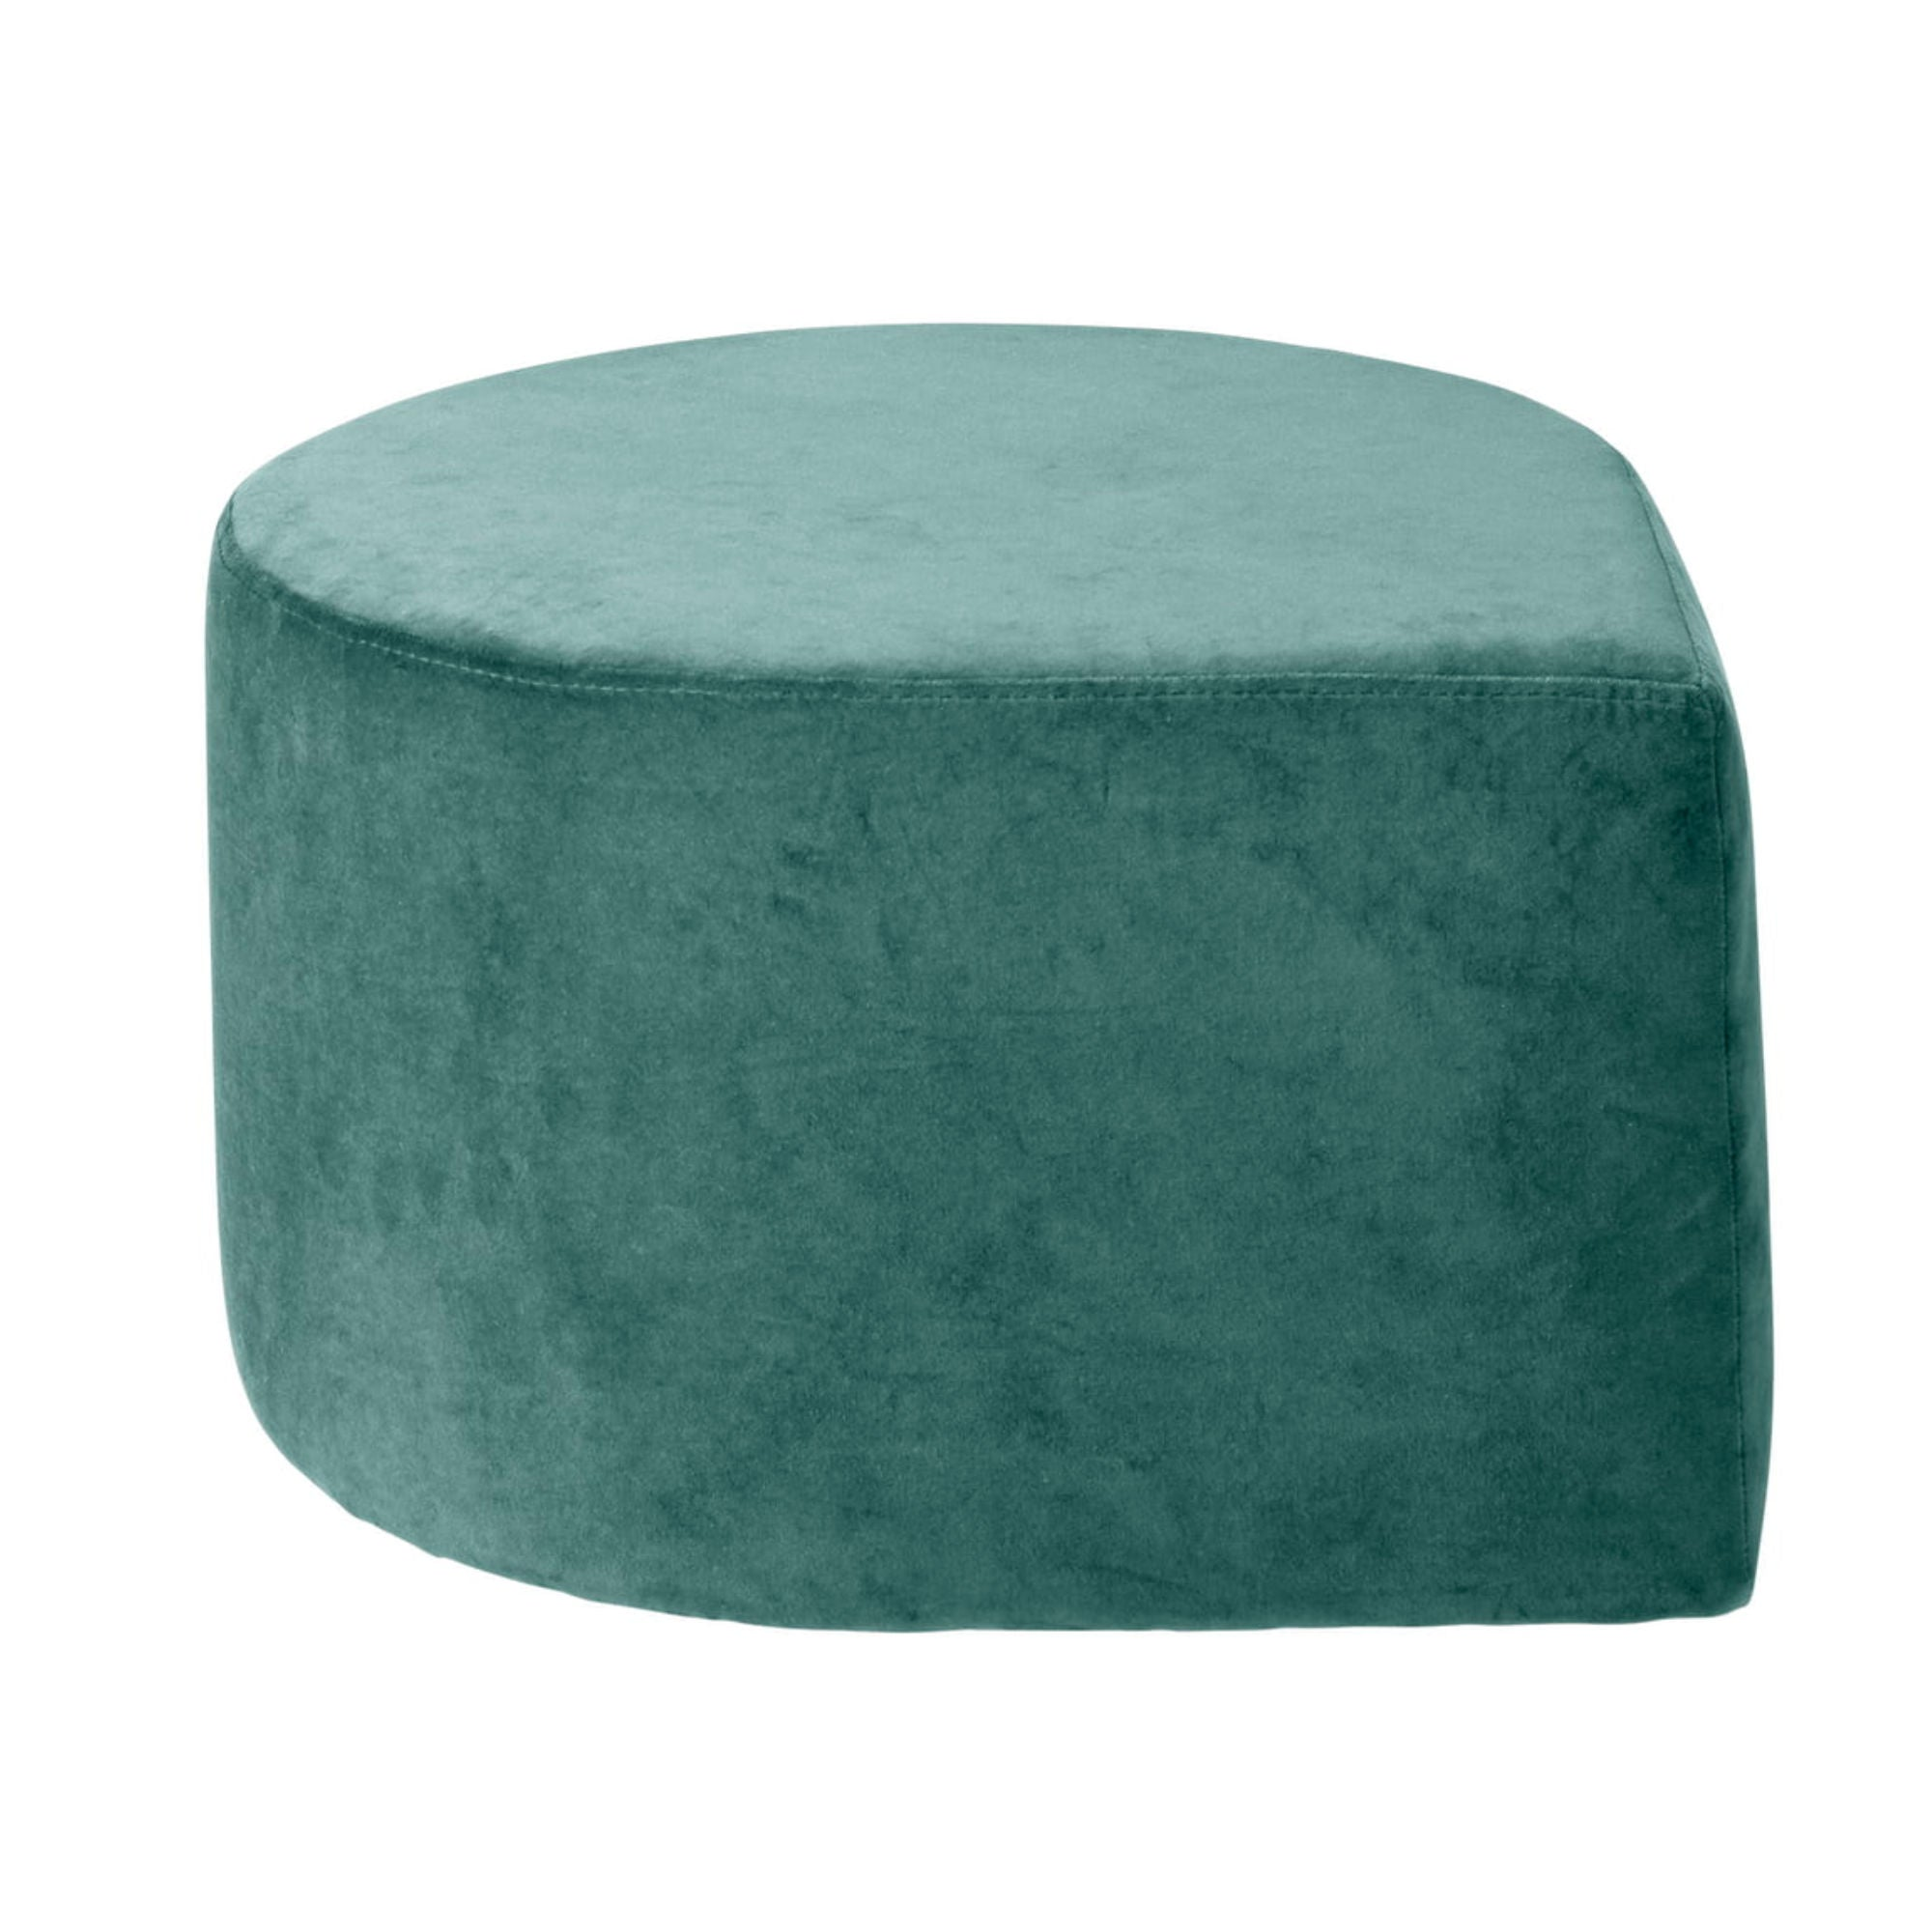 AYTM Stilla Pouf , Dusty Green